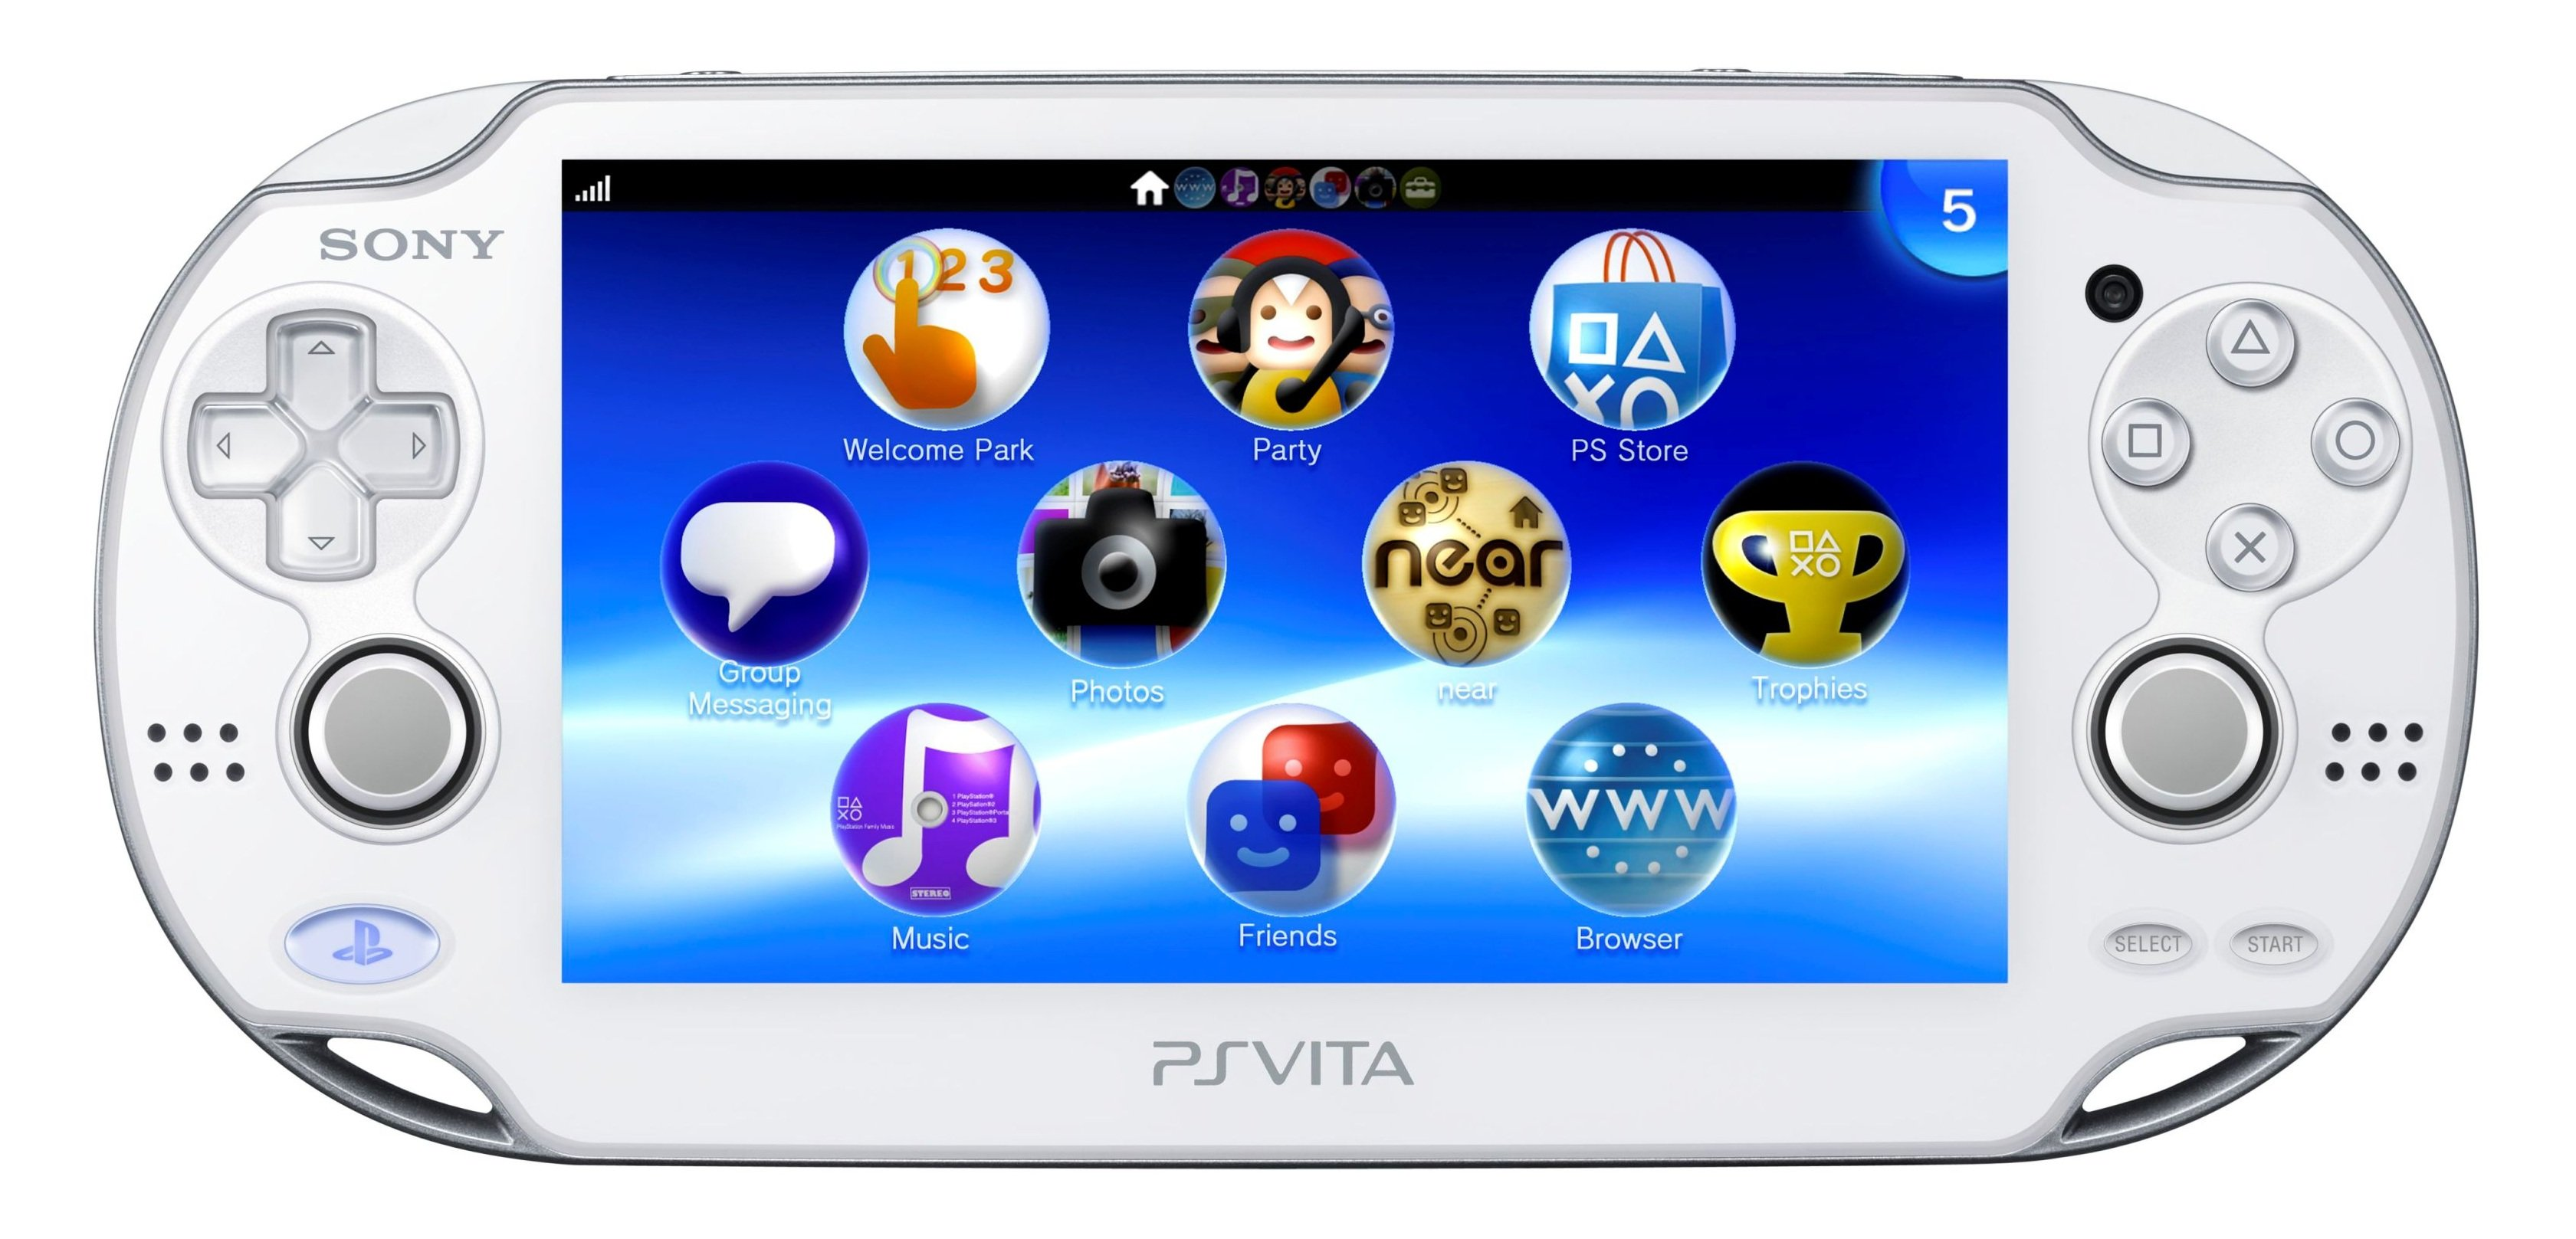 Don't want to update your PS Vita?